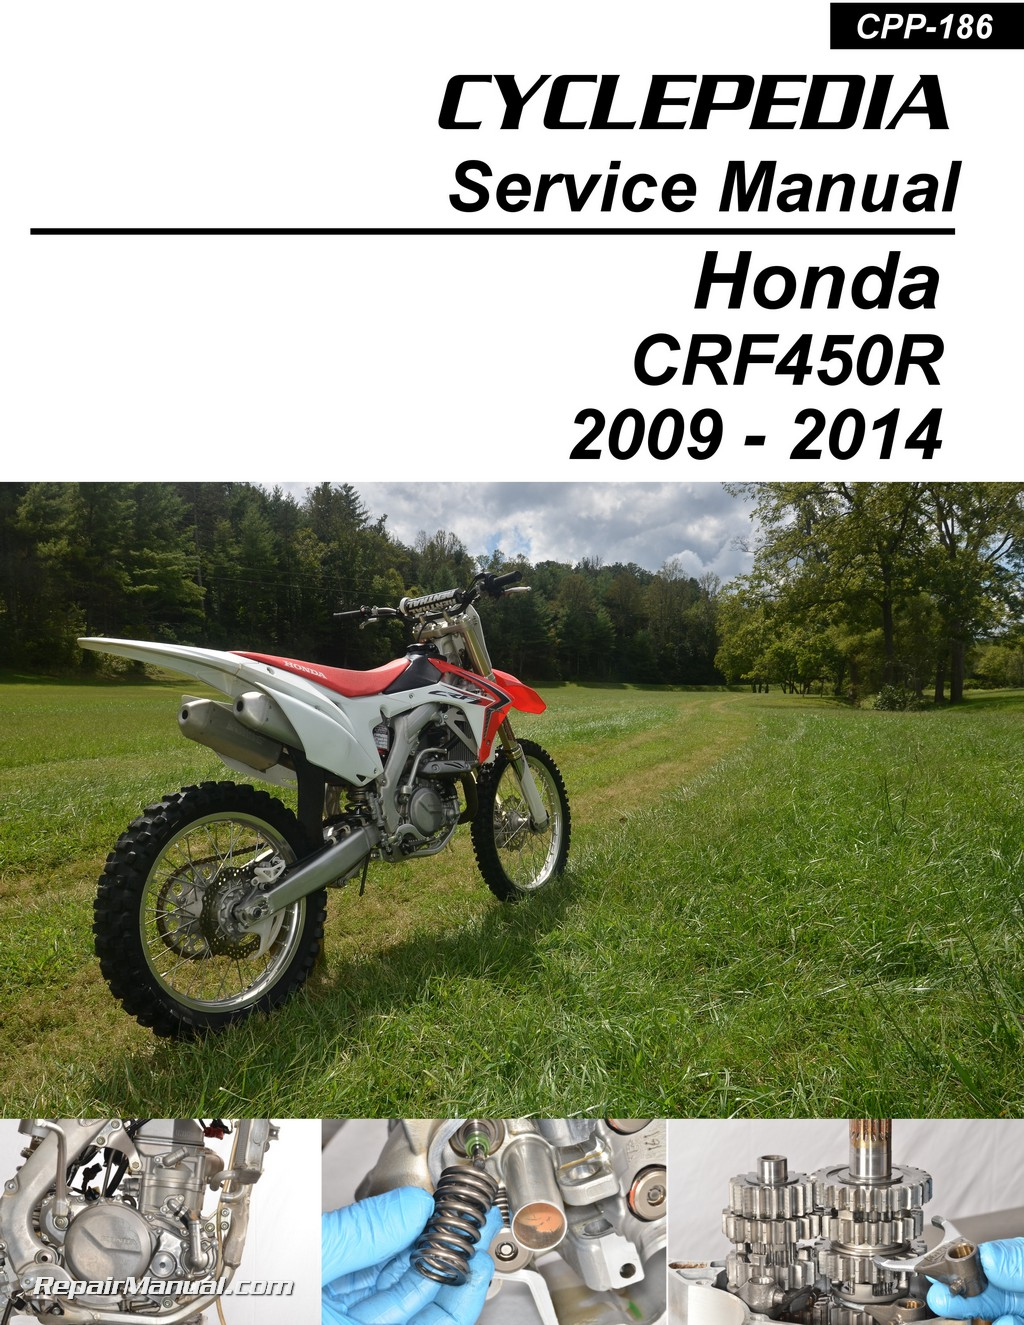 2004 Honda 450r Wiring Diagram Electrical Diagrams Trx450r 2009 Crf450r Product U2022 Rincon